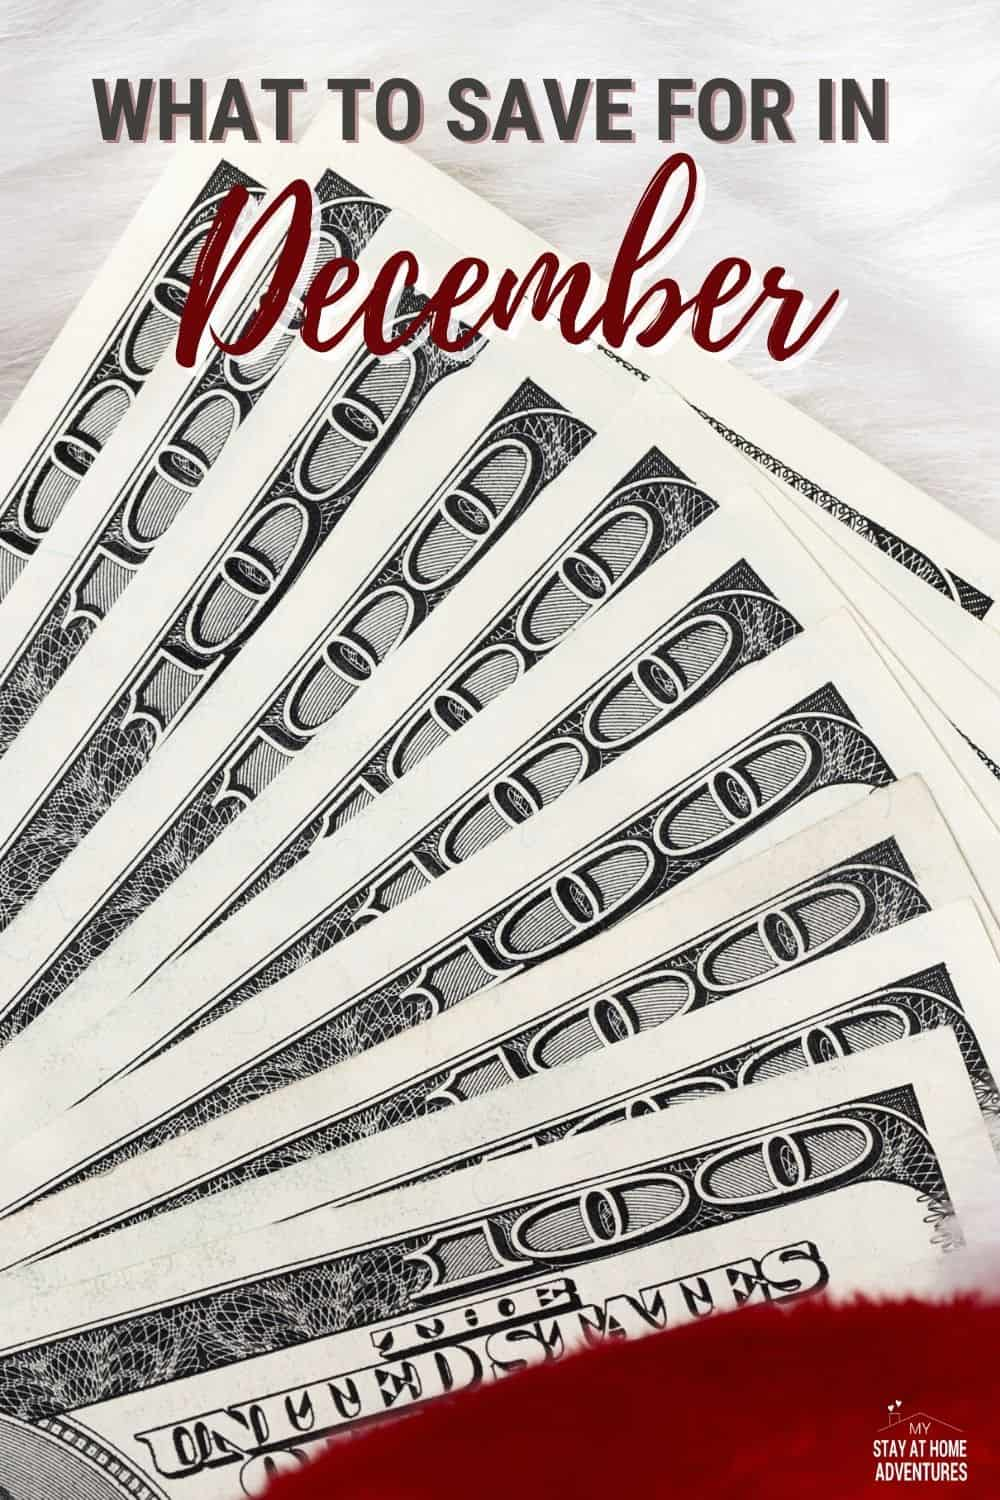 Learn five things to save for in December and the reasons behind it. Before you budget, make sure you save smart this December. via @mystayathome